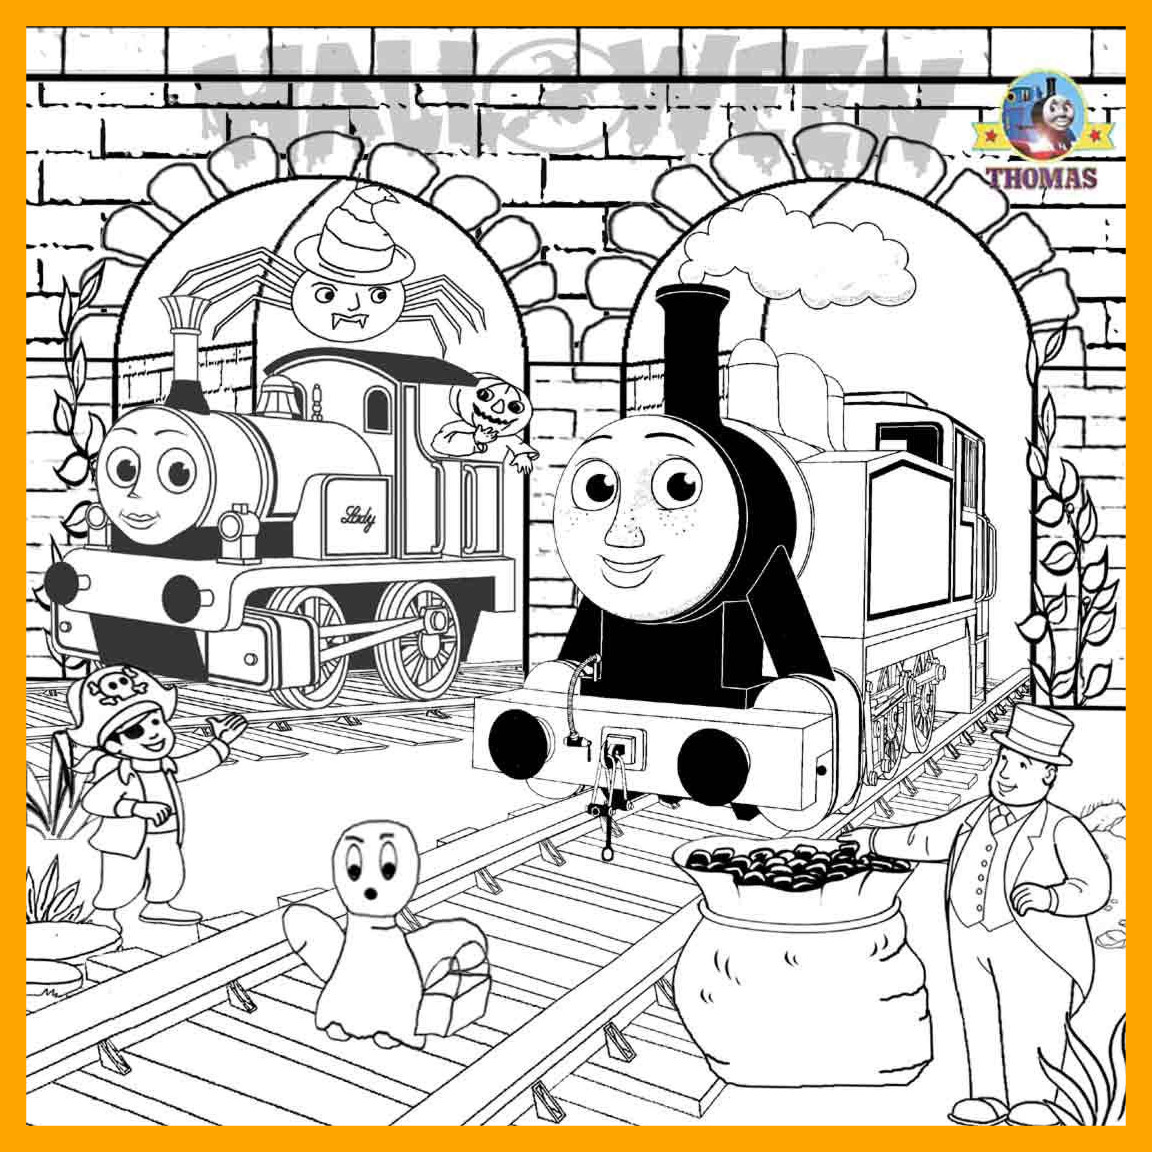 1152x1152 Stunning Thomas The Train Coloring Pages For Style And Engine